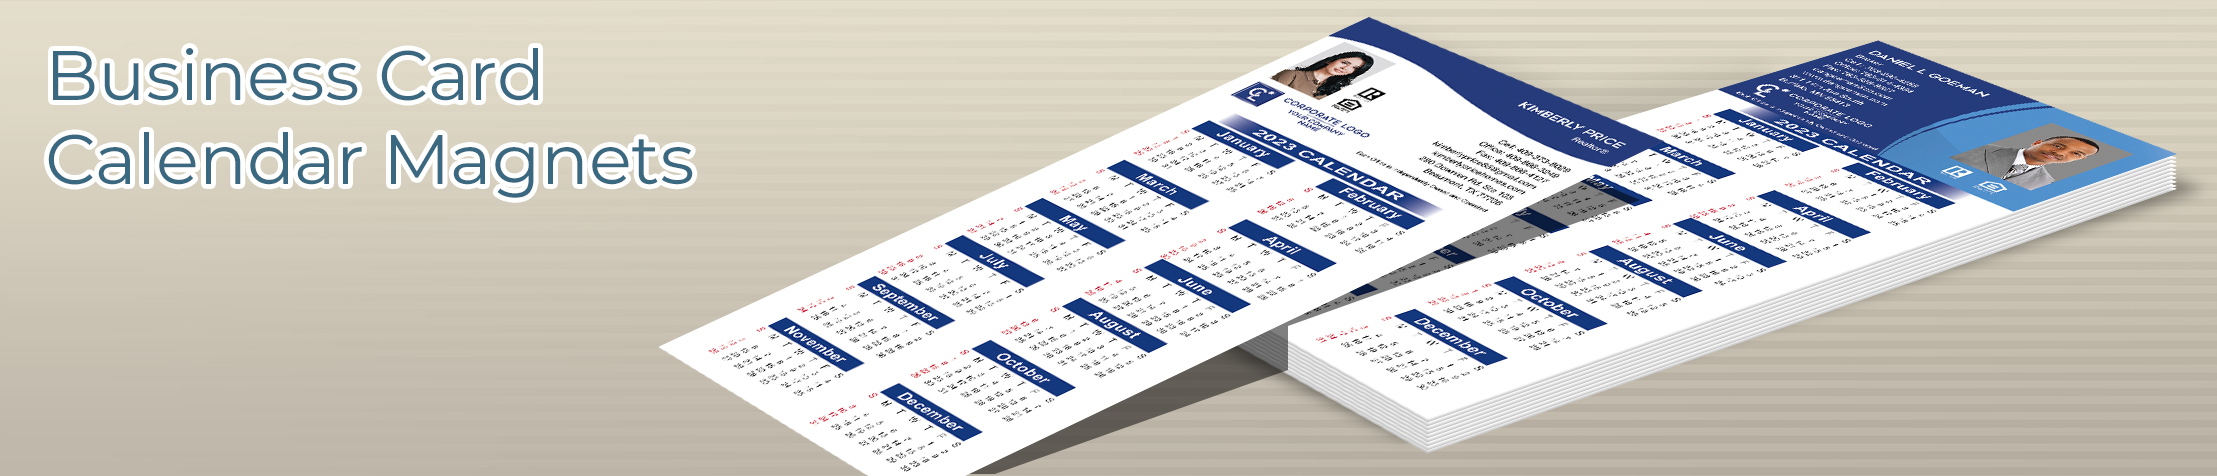 Coldwell Banker Real Estate Business Card Calendar Magnets - Coldwell Banker  2019 calendars with photo and contact info | BestPrintBuy.com